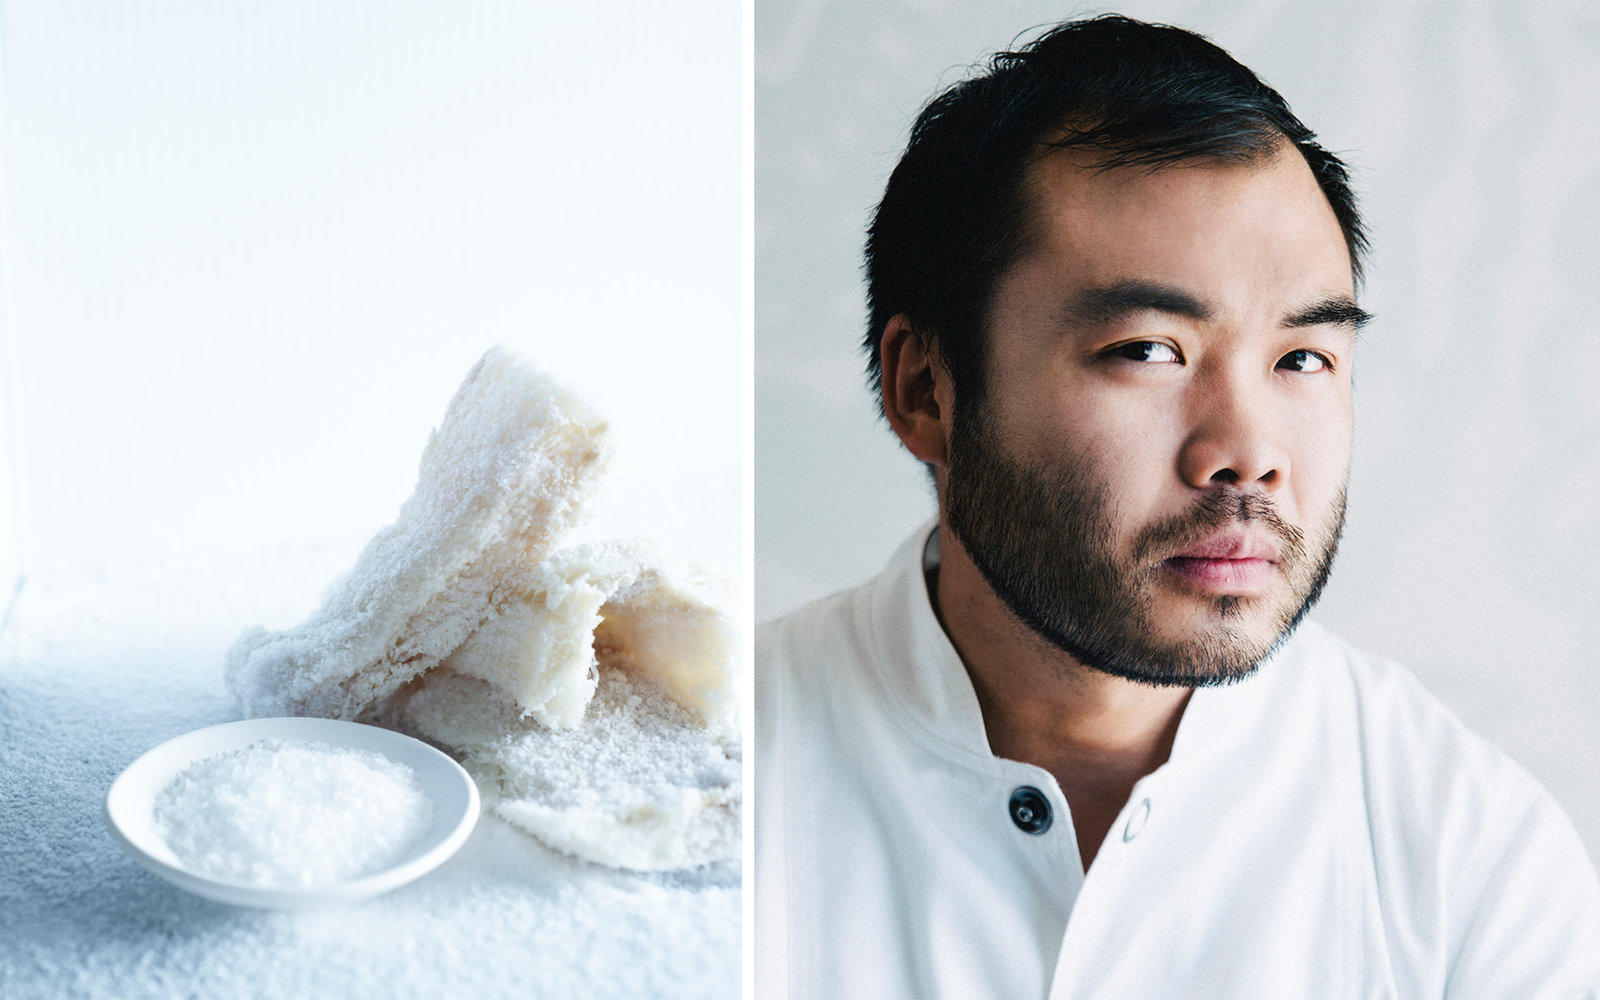 Foods Worth Traveling For: Paul Qui